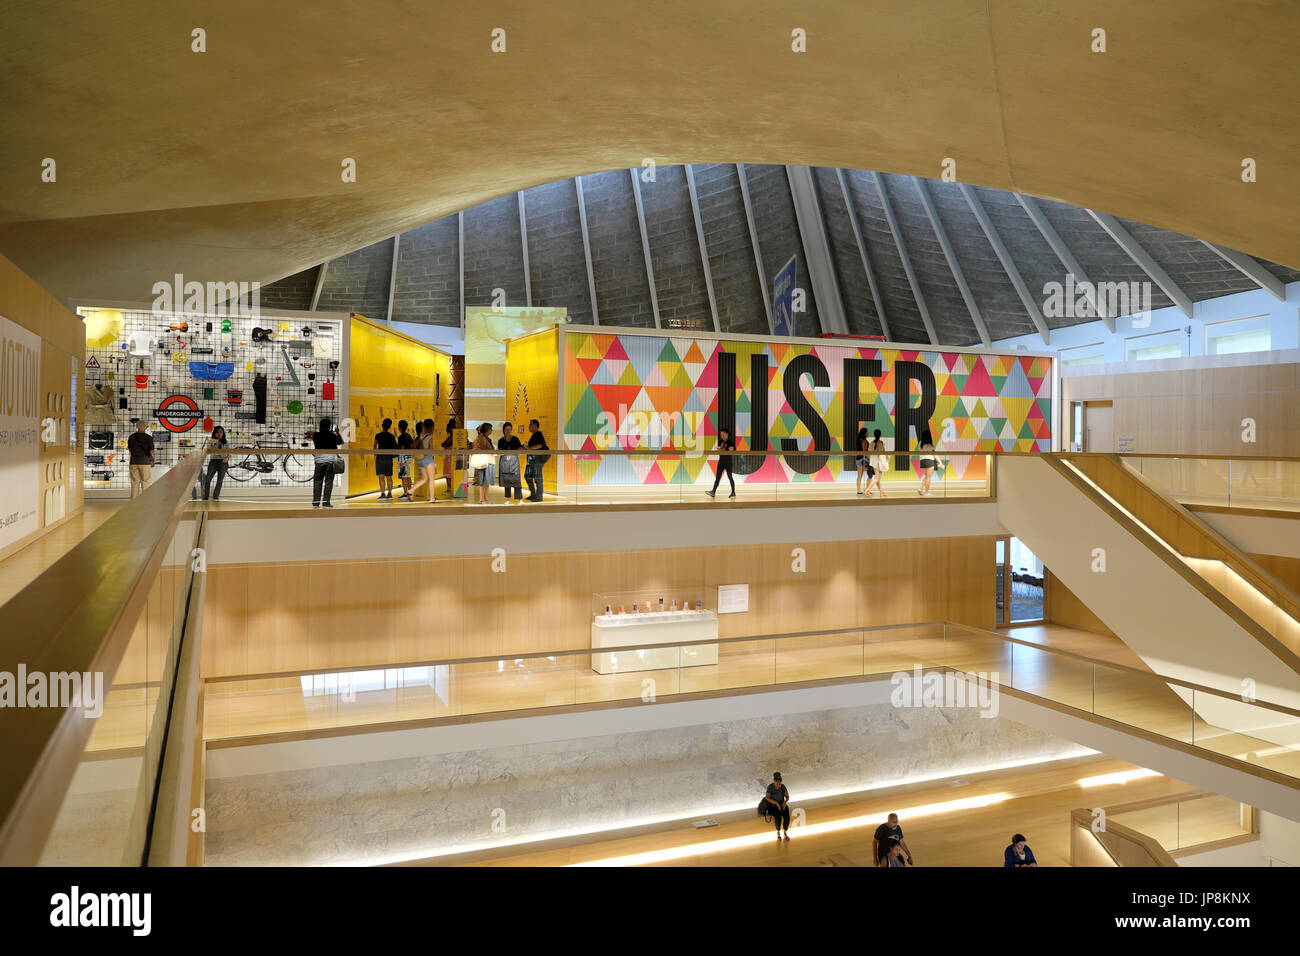 Interior view of the Design Museum USER graphics sign in the former Commonwealth Institute in Kensington, London UK  KATHY DEWITT - Stock Image